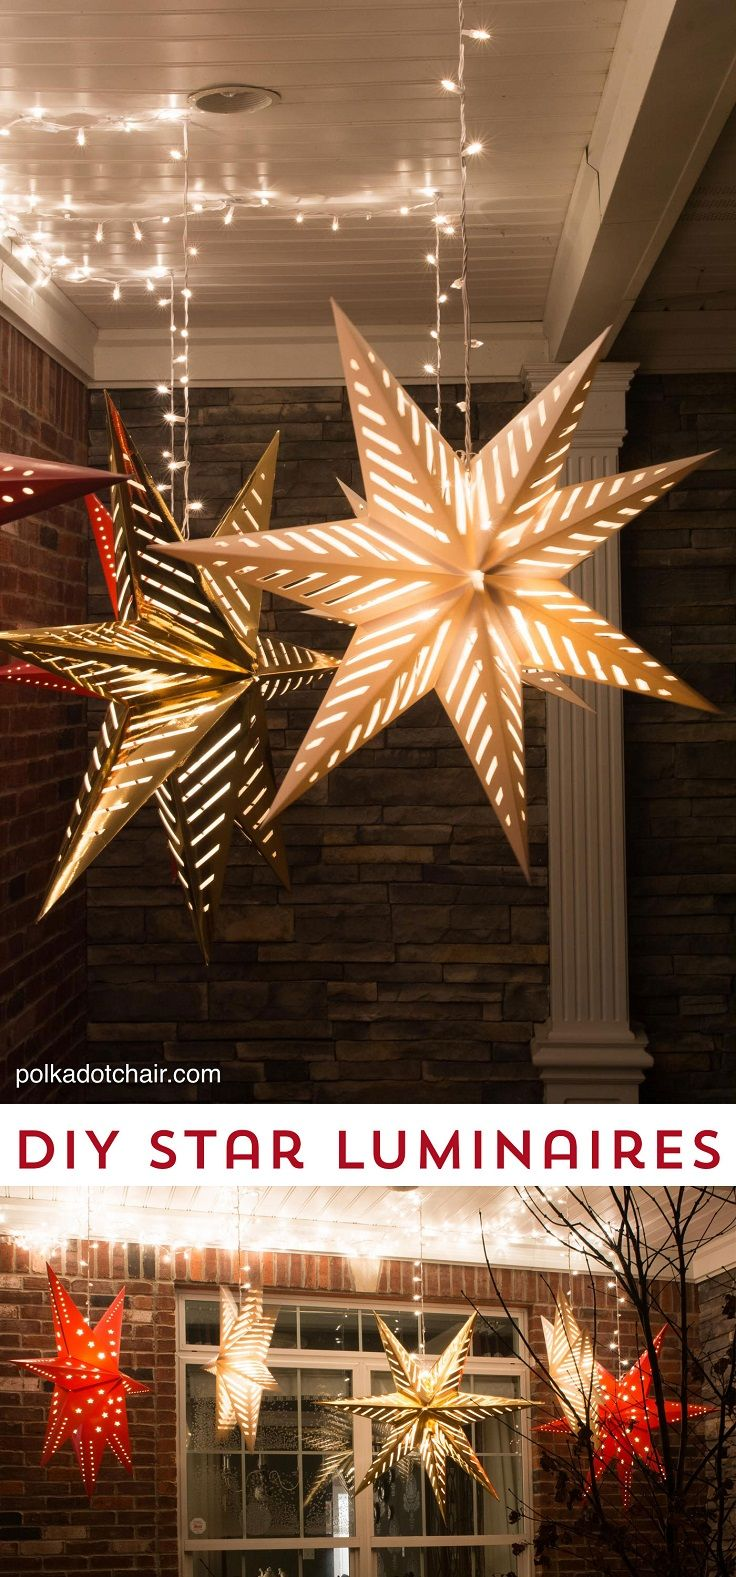 Hanging Star Lanterns Christmas Front Porch Decor Idea 13 Magical Indoor And Outdoor Lights Ideas